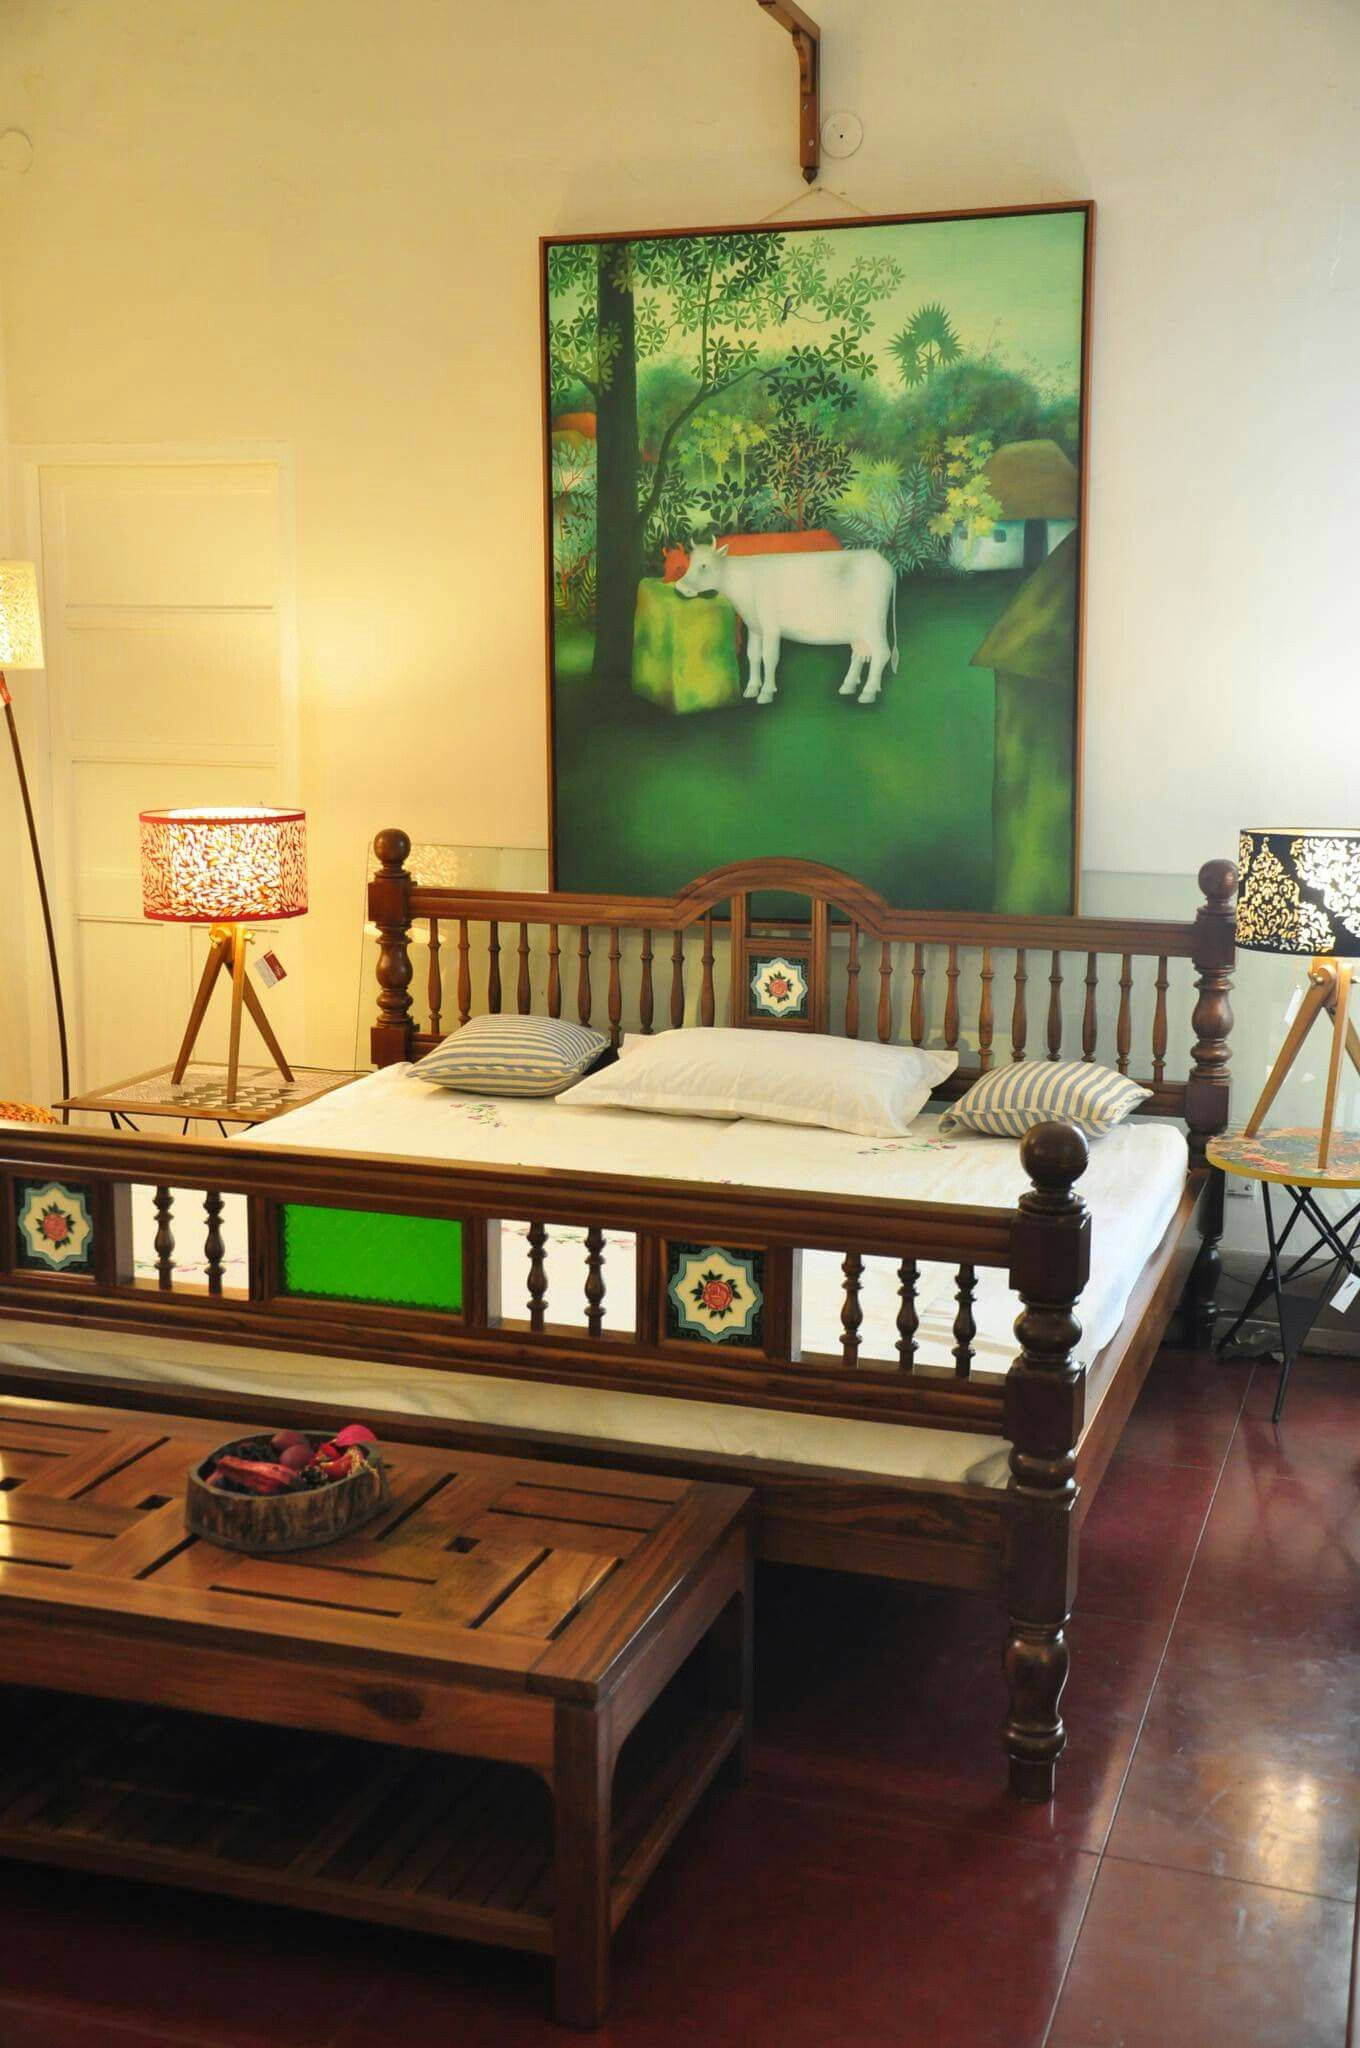 Pin by Gouri Joshi on cozy Indian homes | Indian bedroom ...